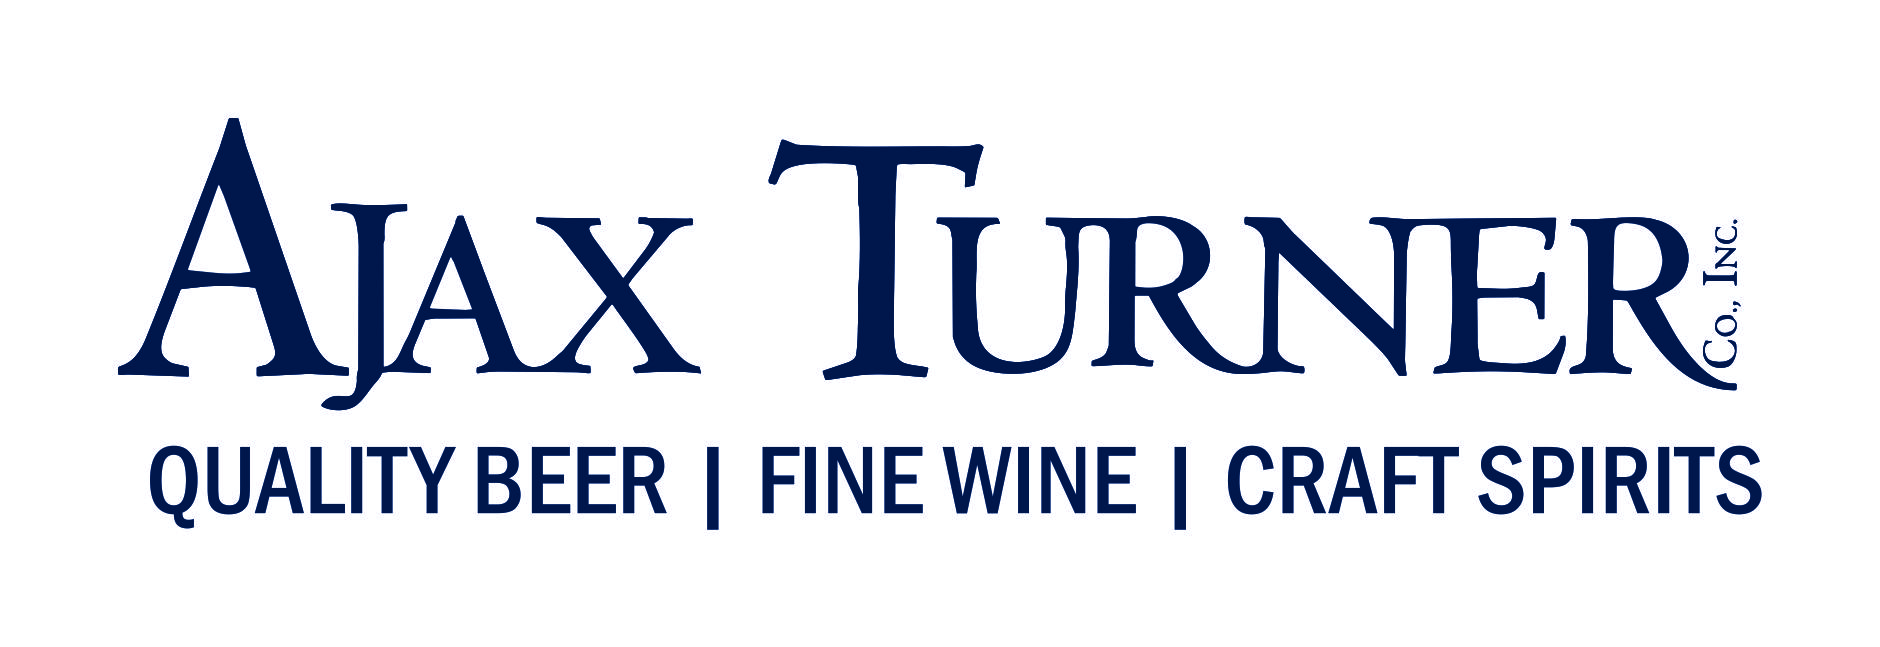 Ajax Turner Co. Inc.